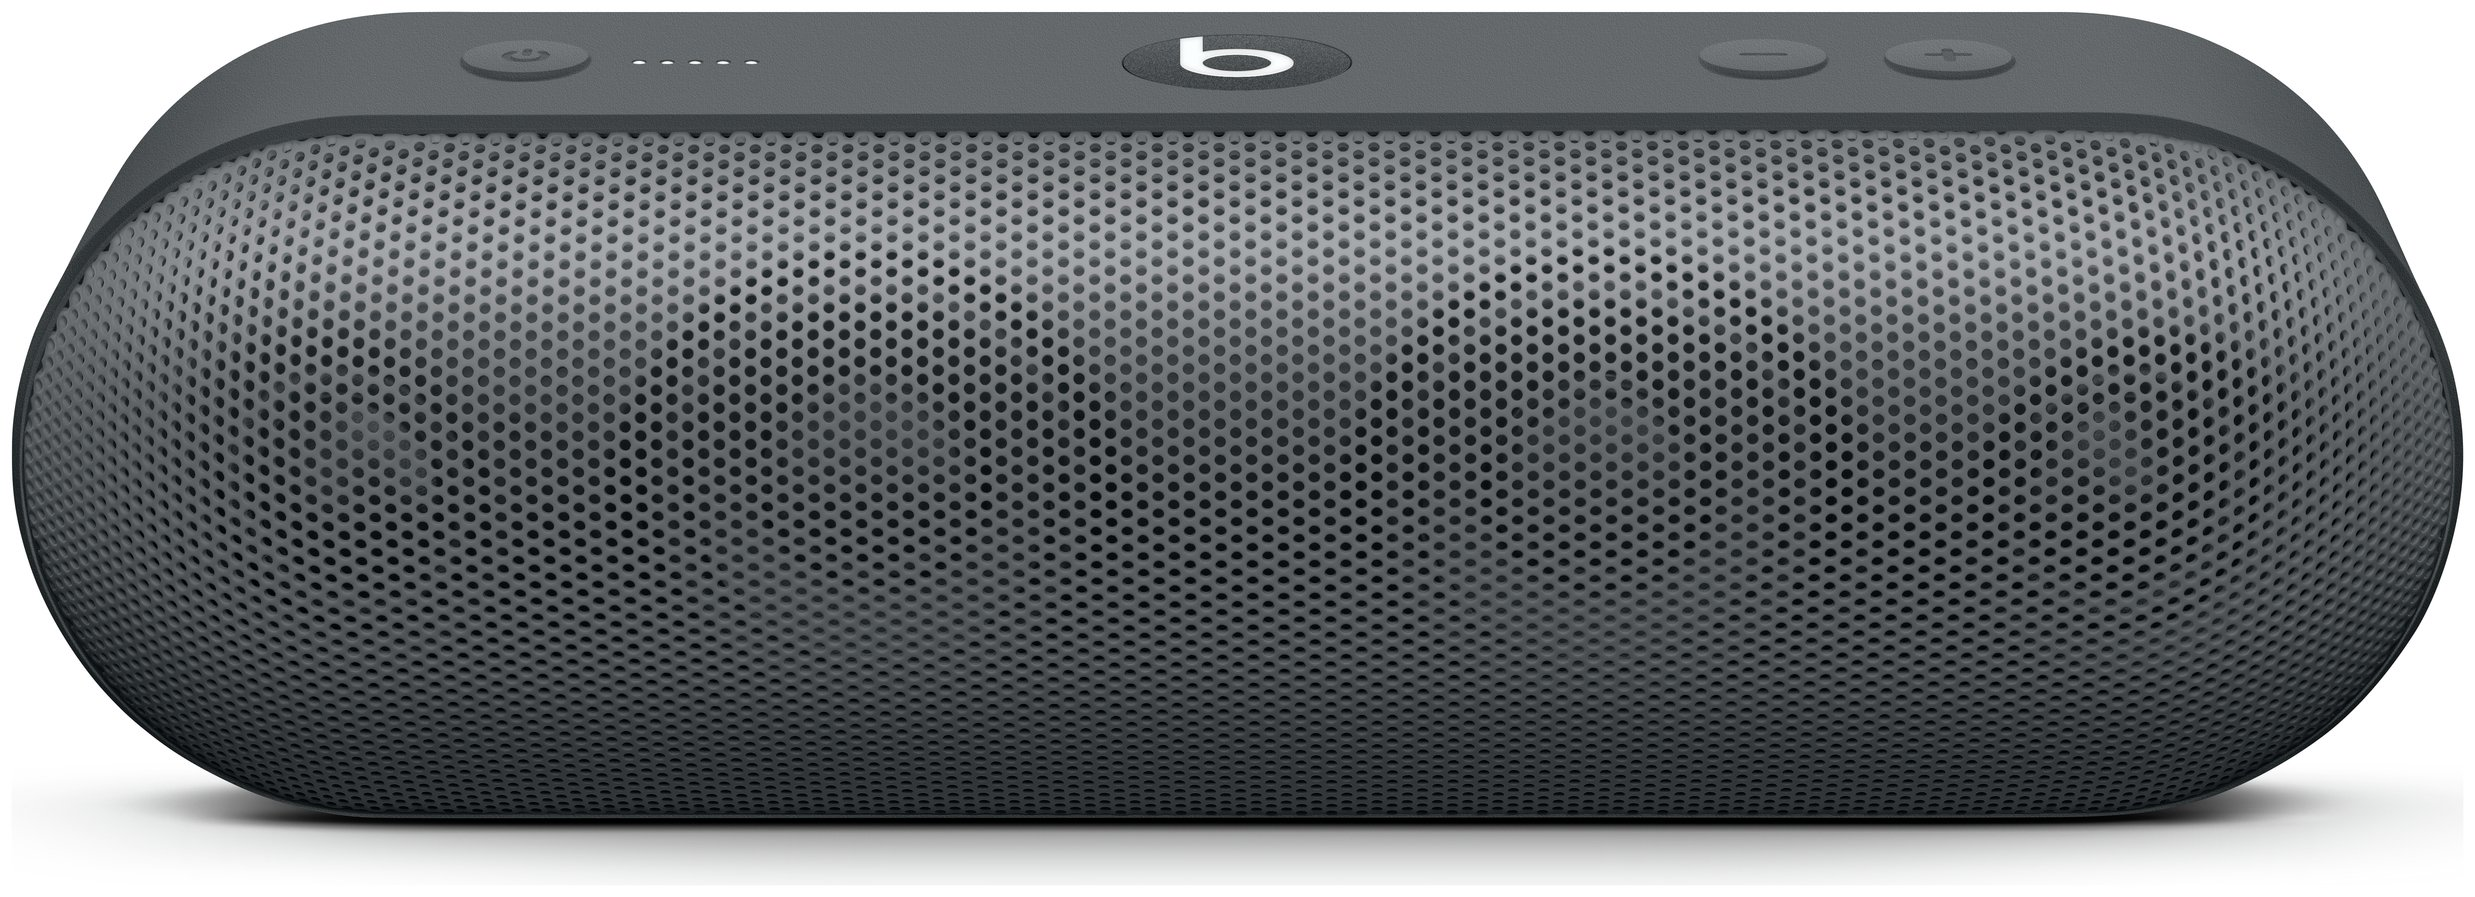 Image of Beats Pill + Portable Wireless Speaker - Grey